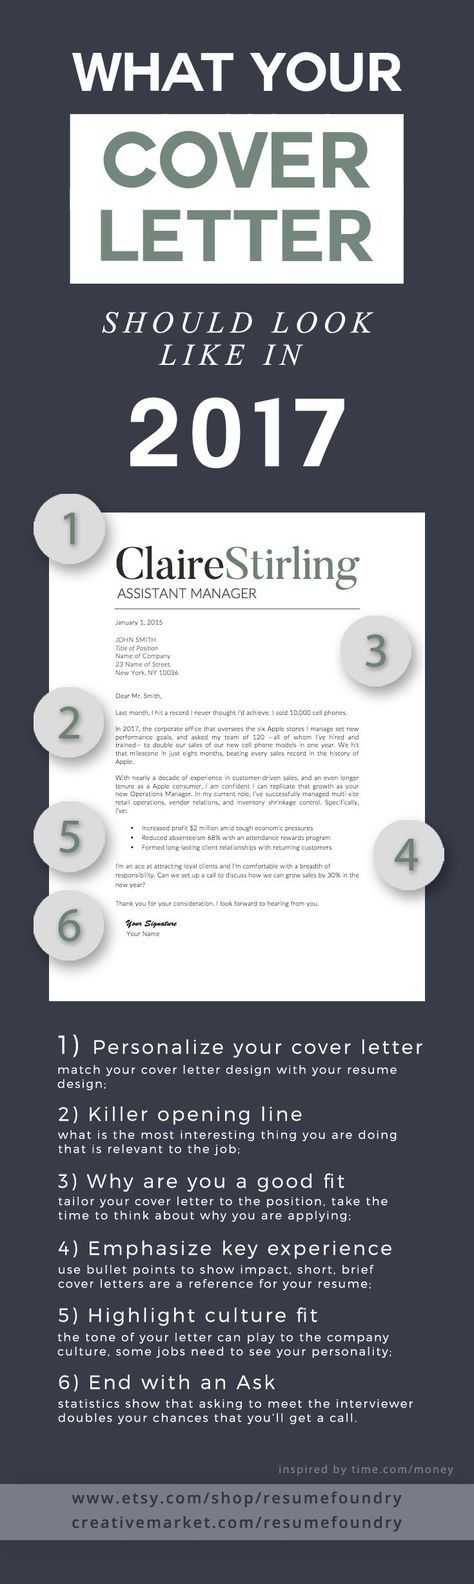 customer service coordinator cover letter%0A What your Cover Letter should look like in       Inspired from time com